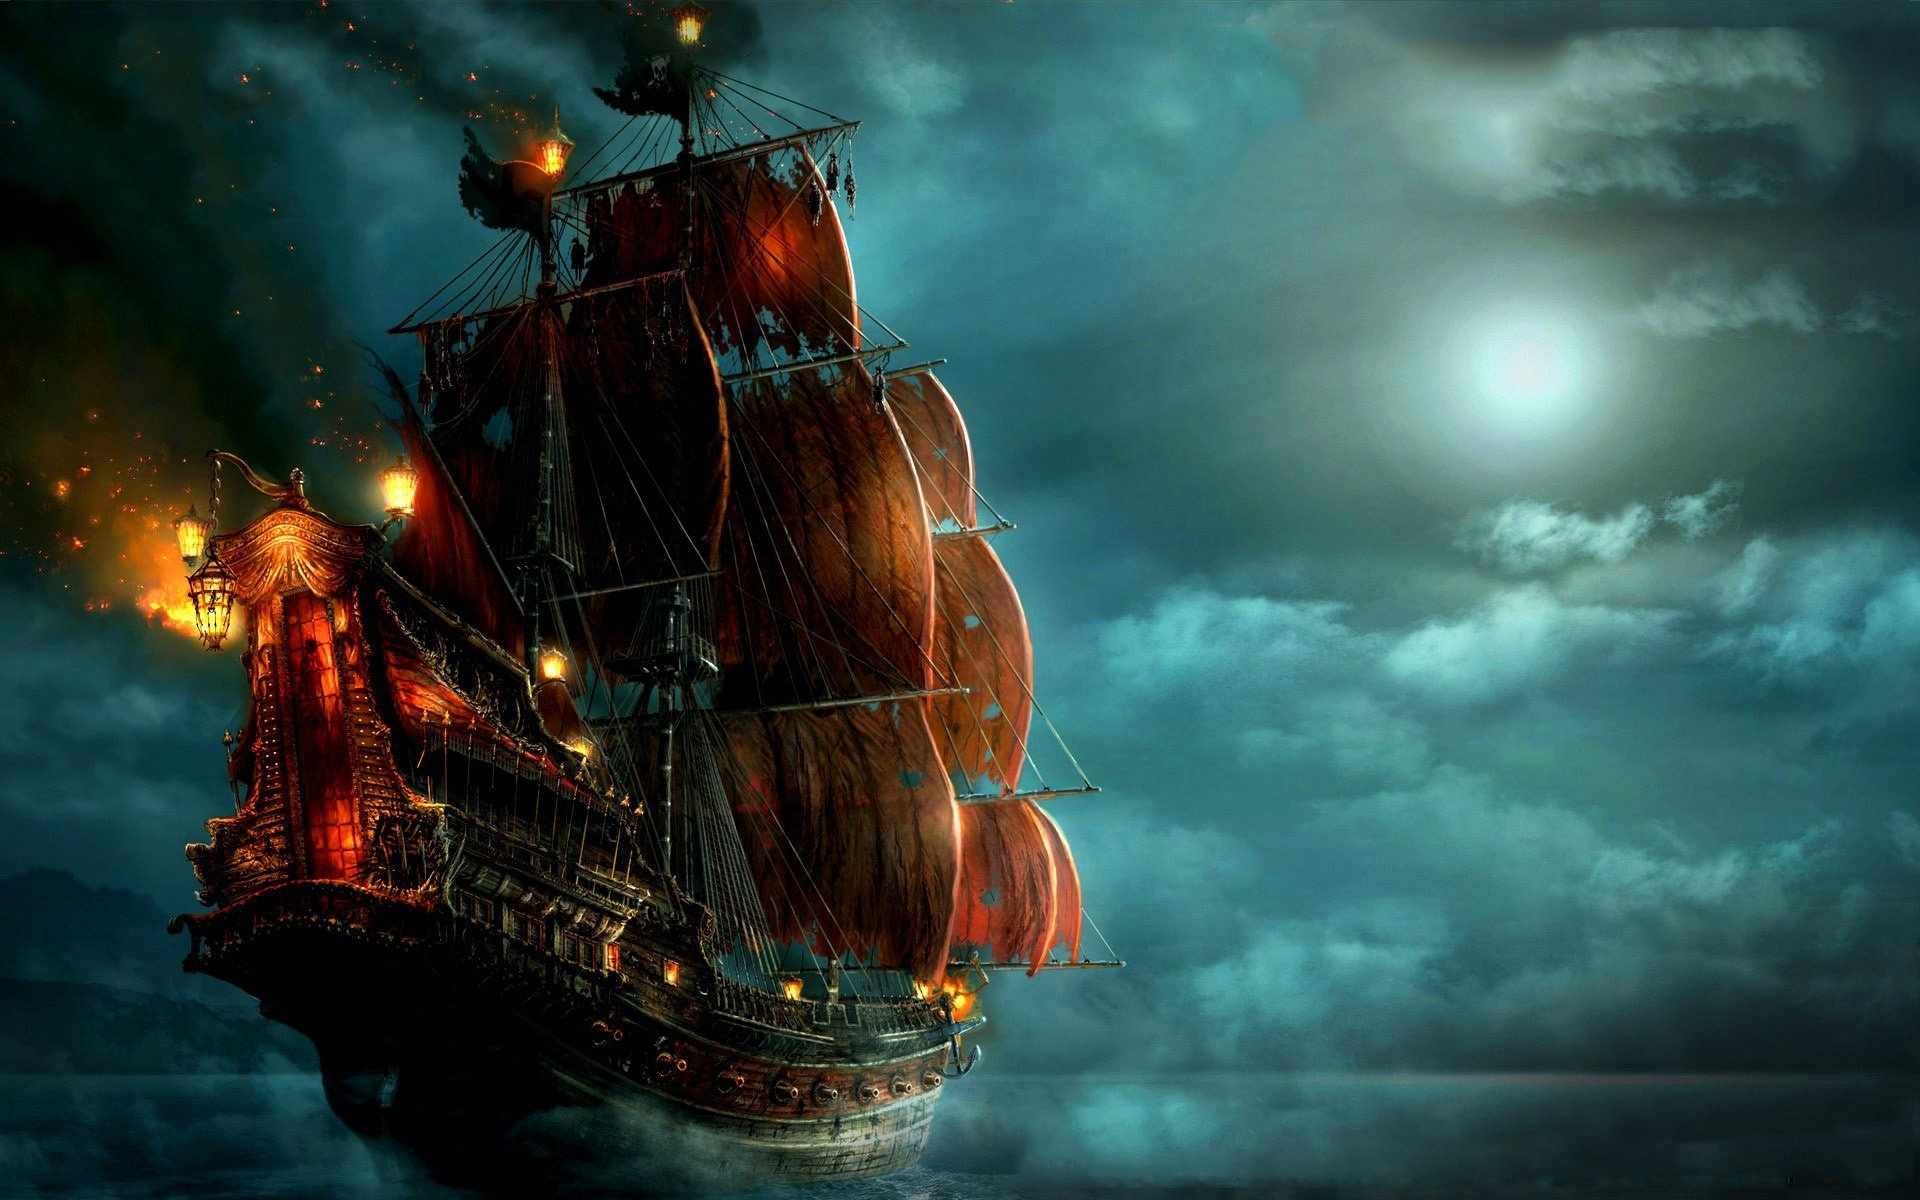 29 pirates of the caribbean hd wallpapers | background images